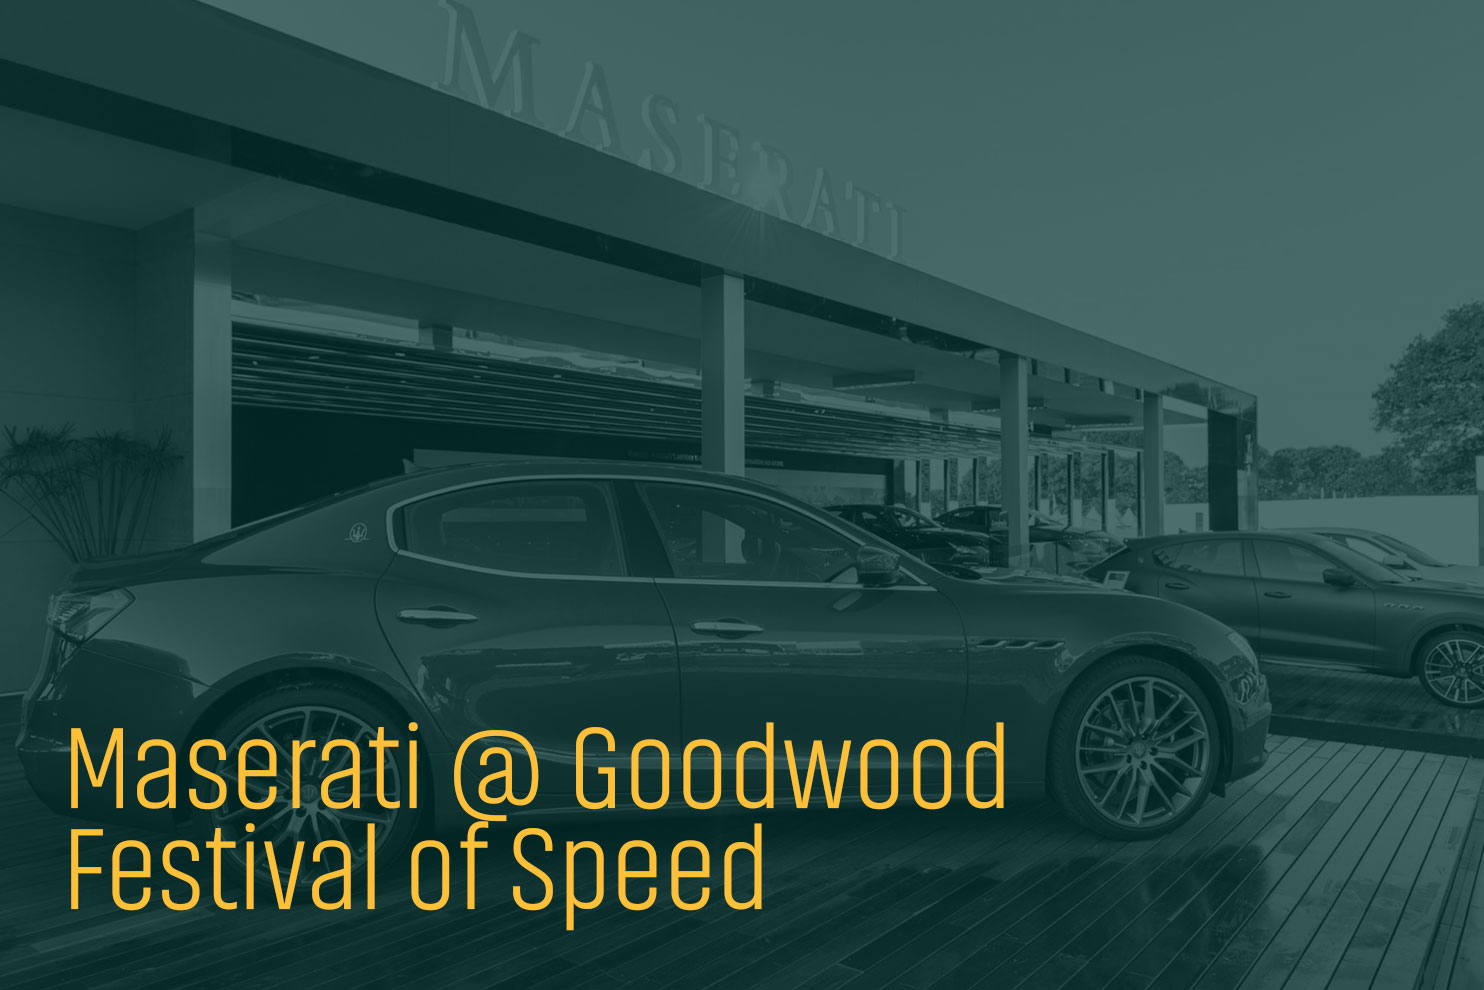 LGE_Maserati-Goodwood_0_Cover